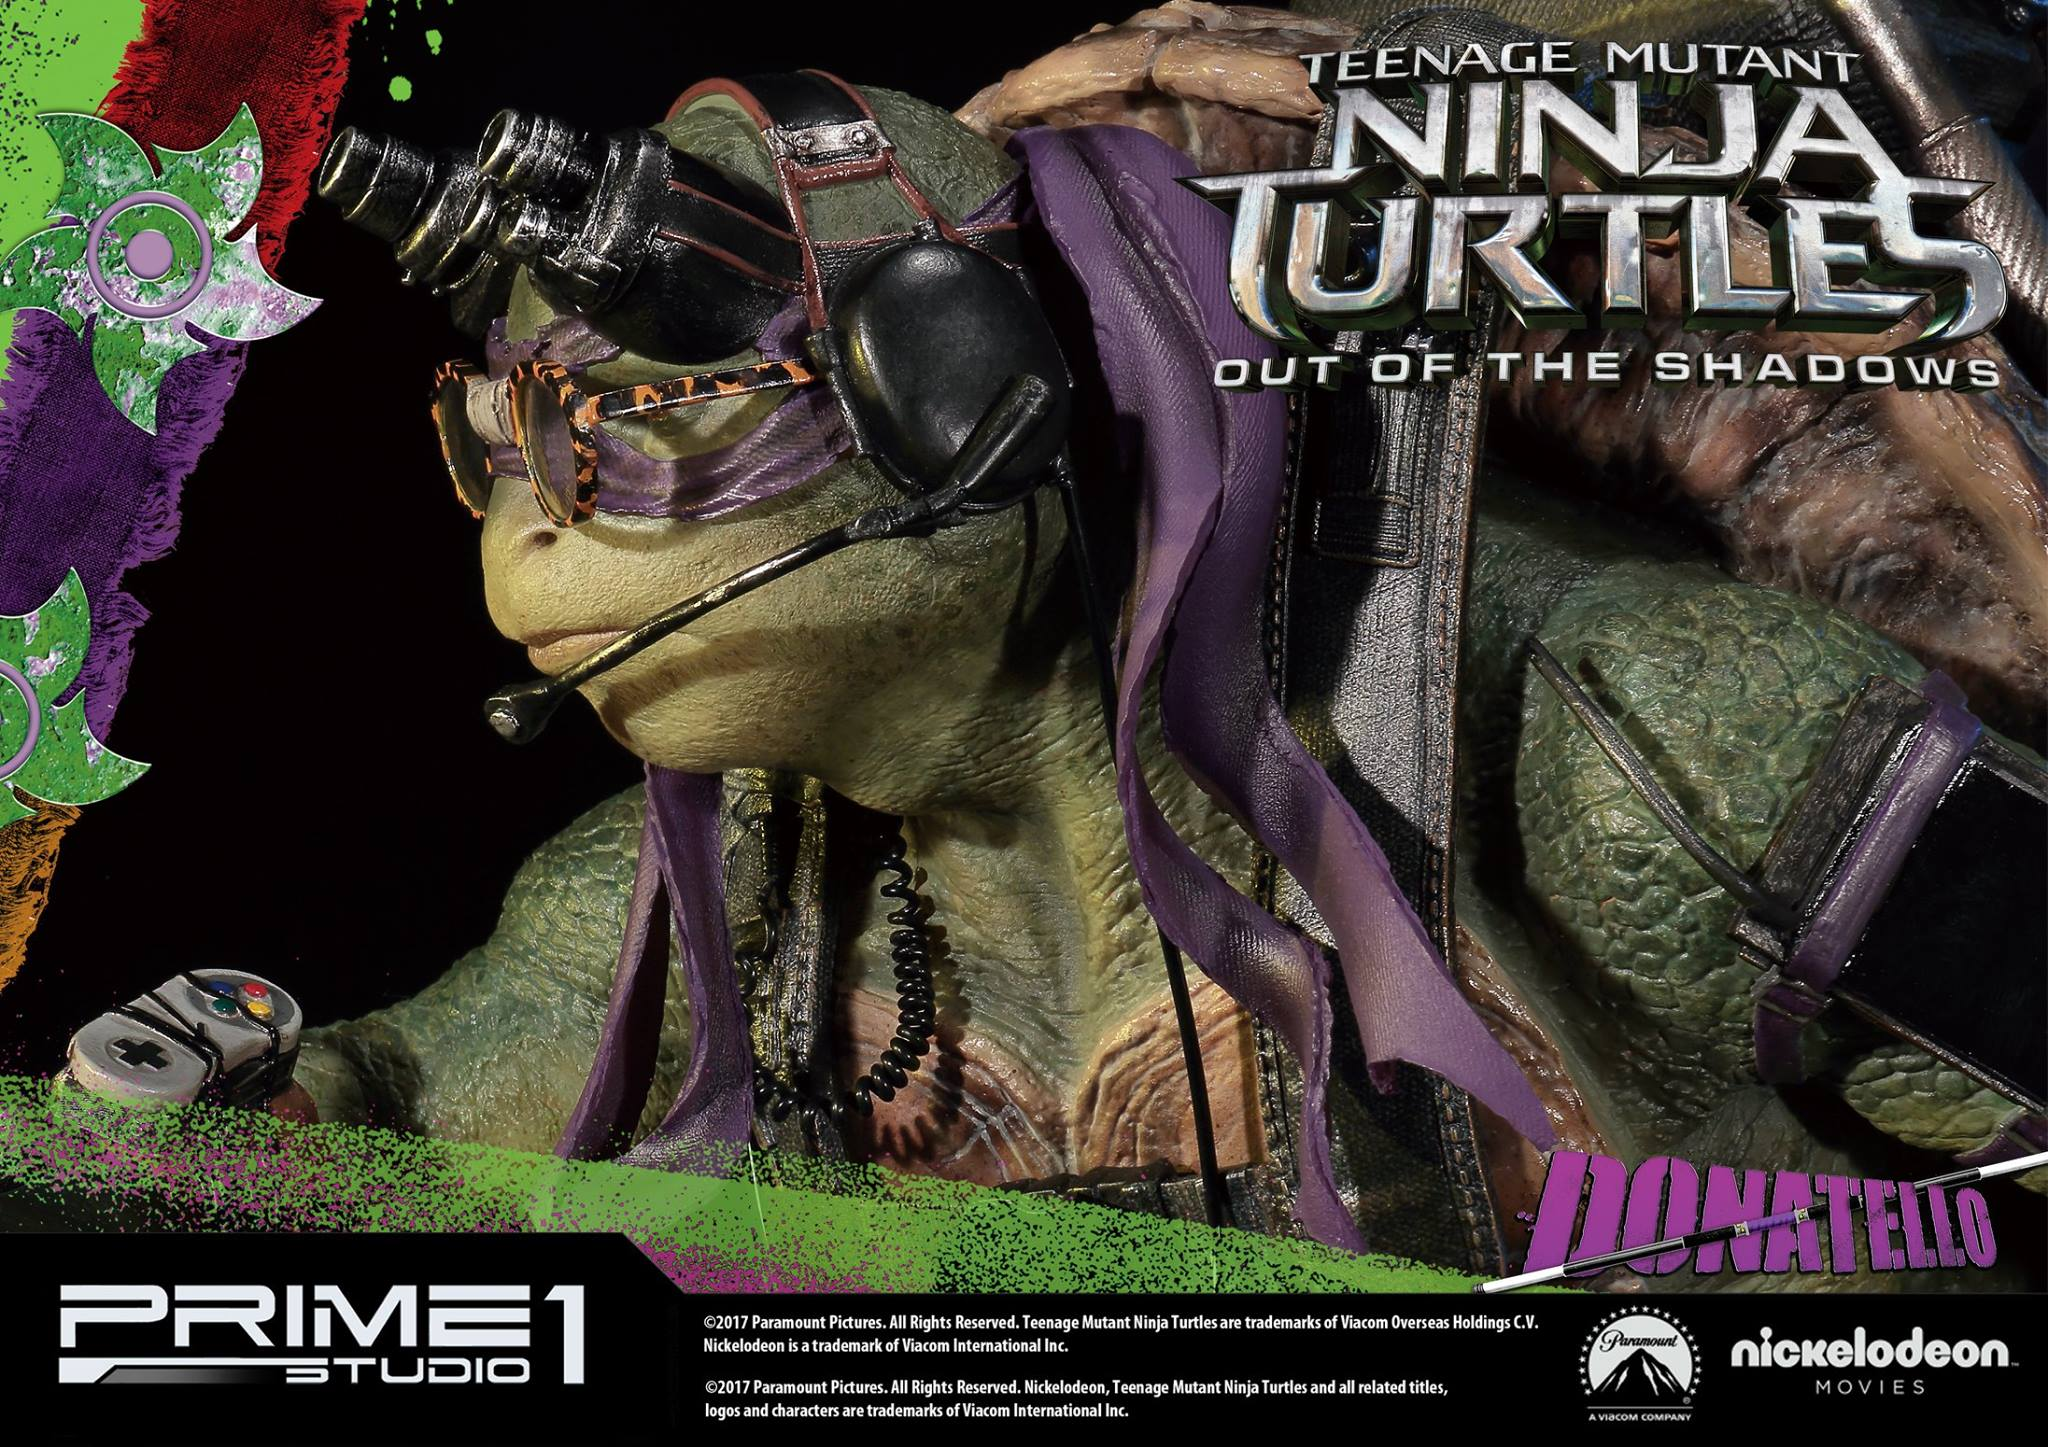 TMNT-Out-of-the-Shadows-Donatello-Statue-015.jpg